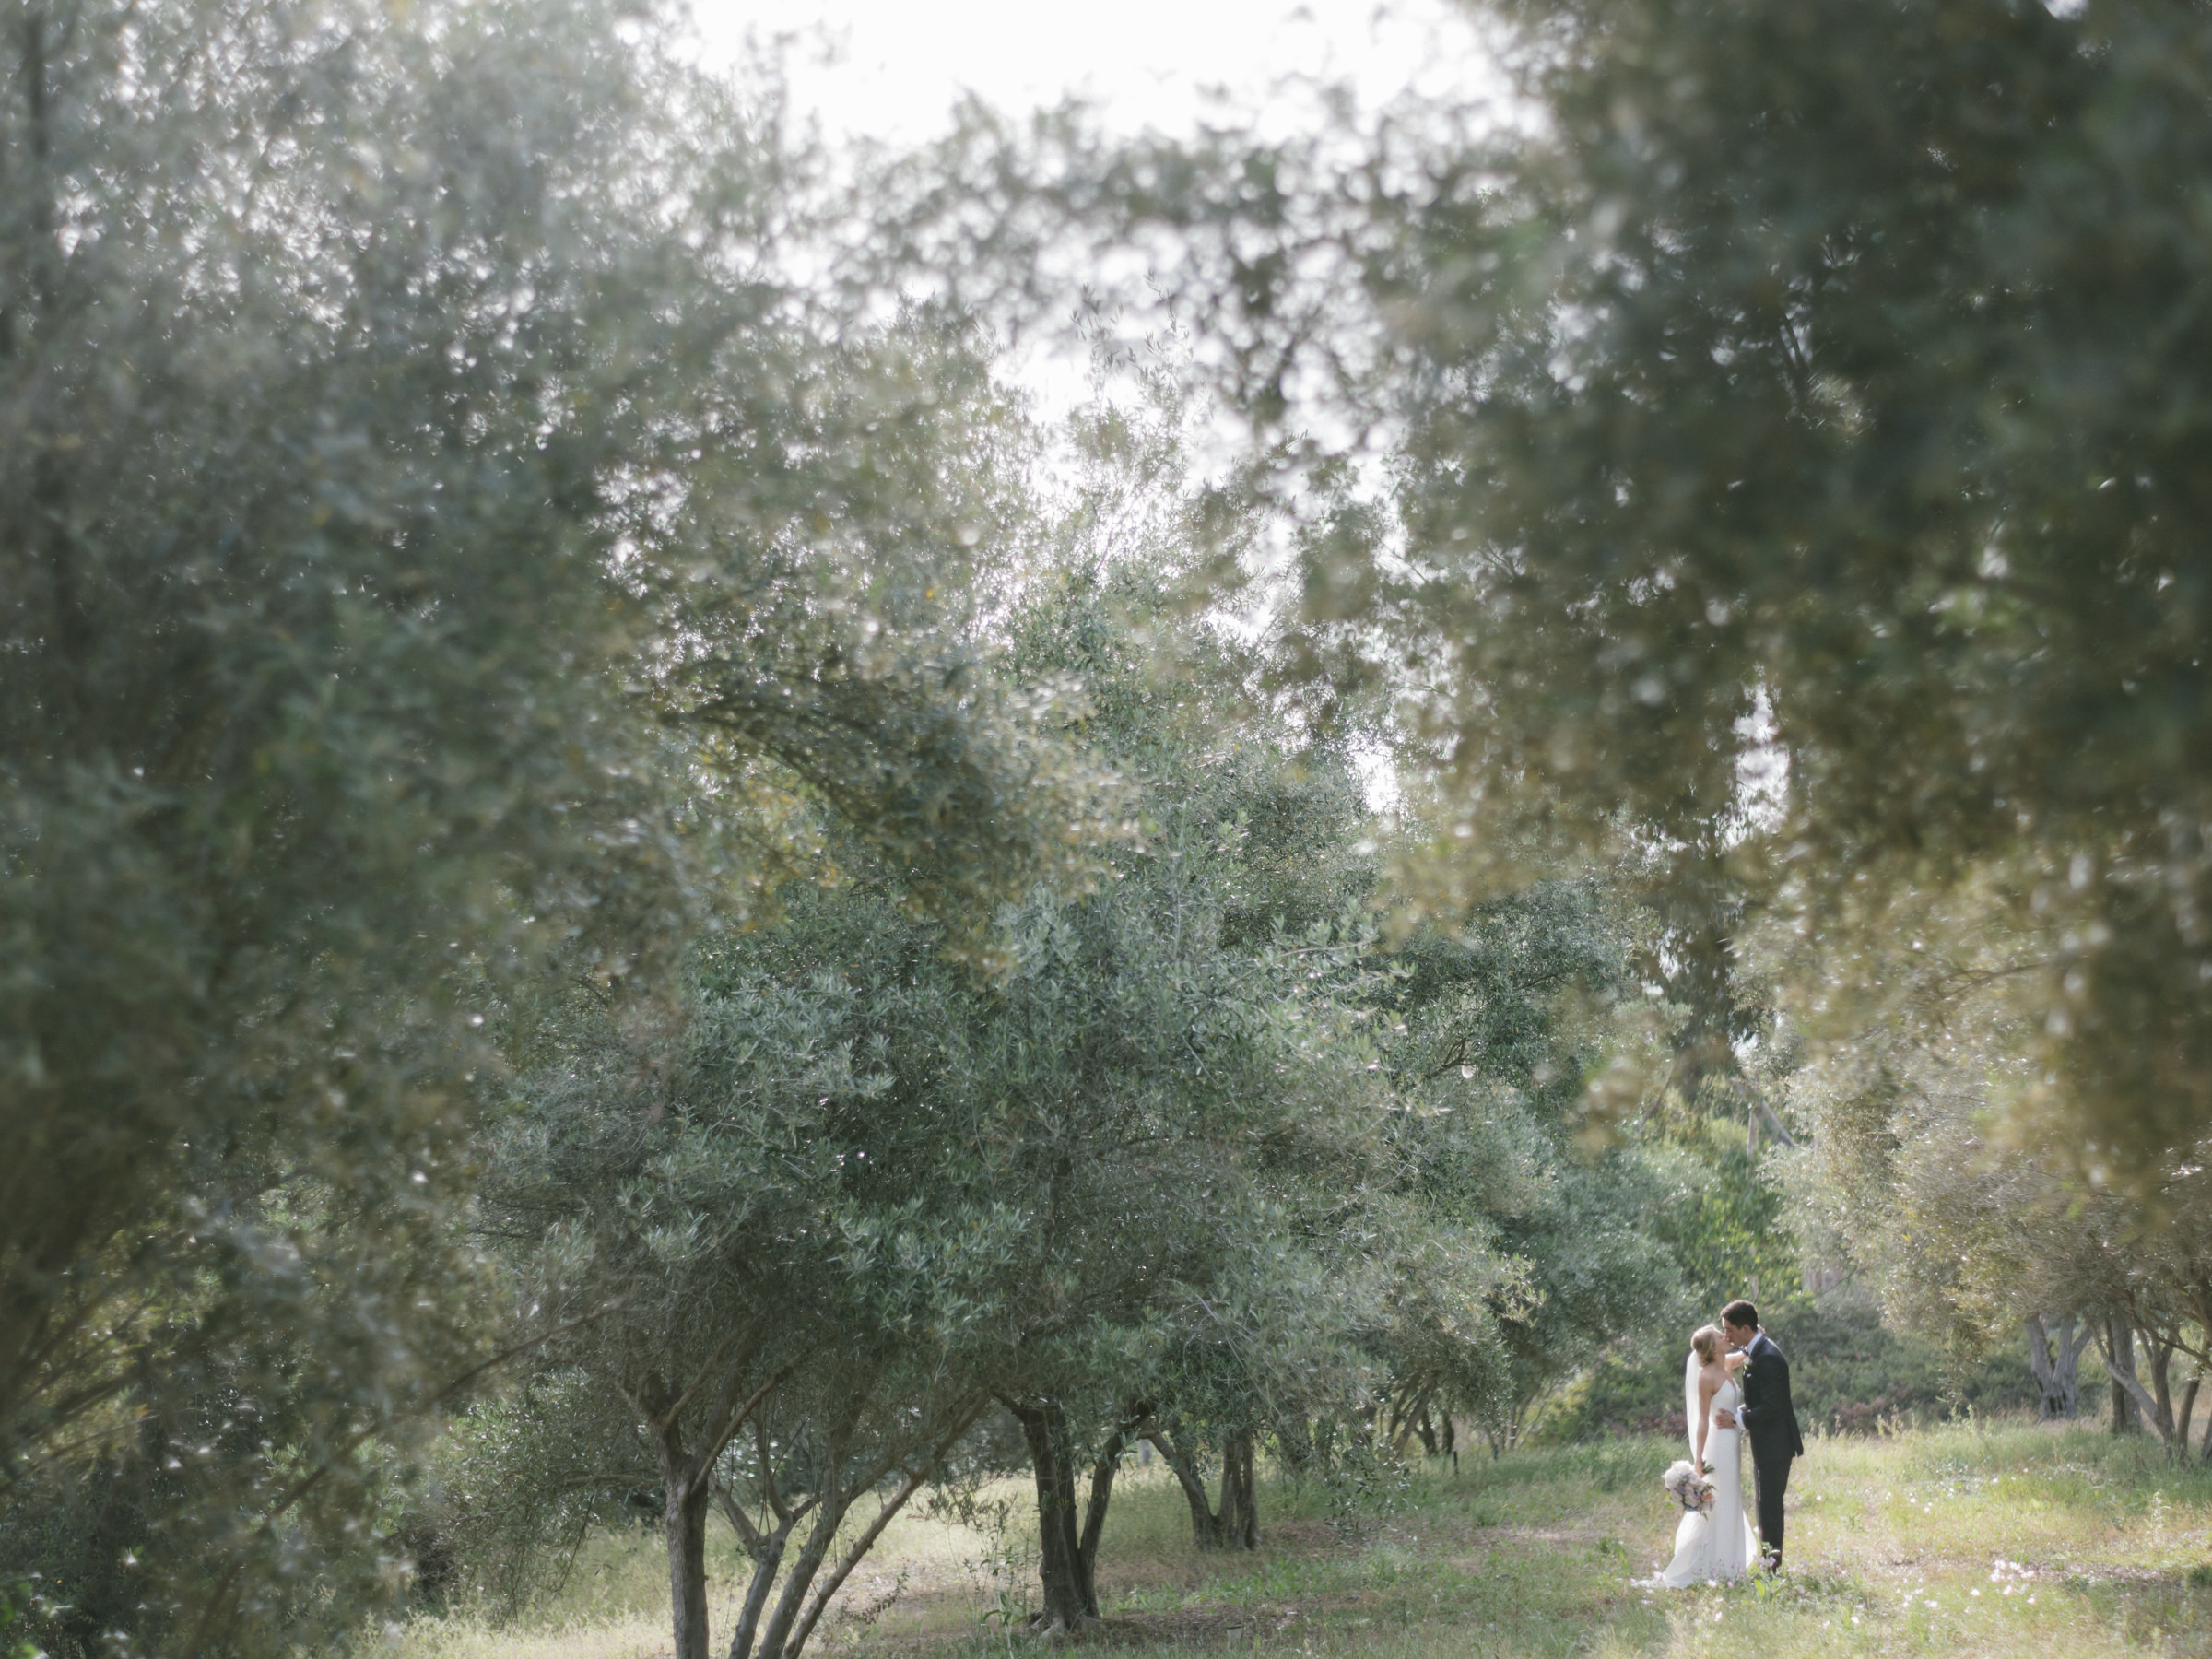 Landscape shot of couple amidst trees - photo by Amy and Stuart Photography